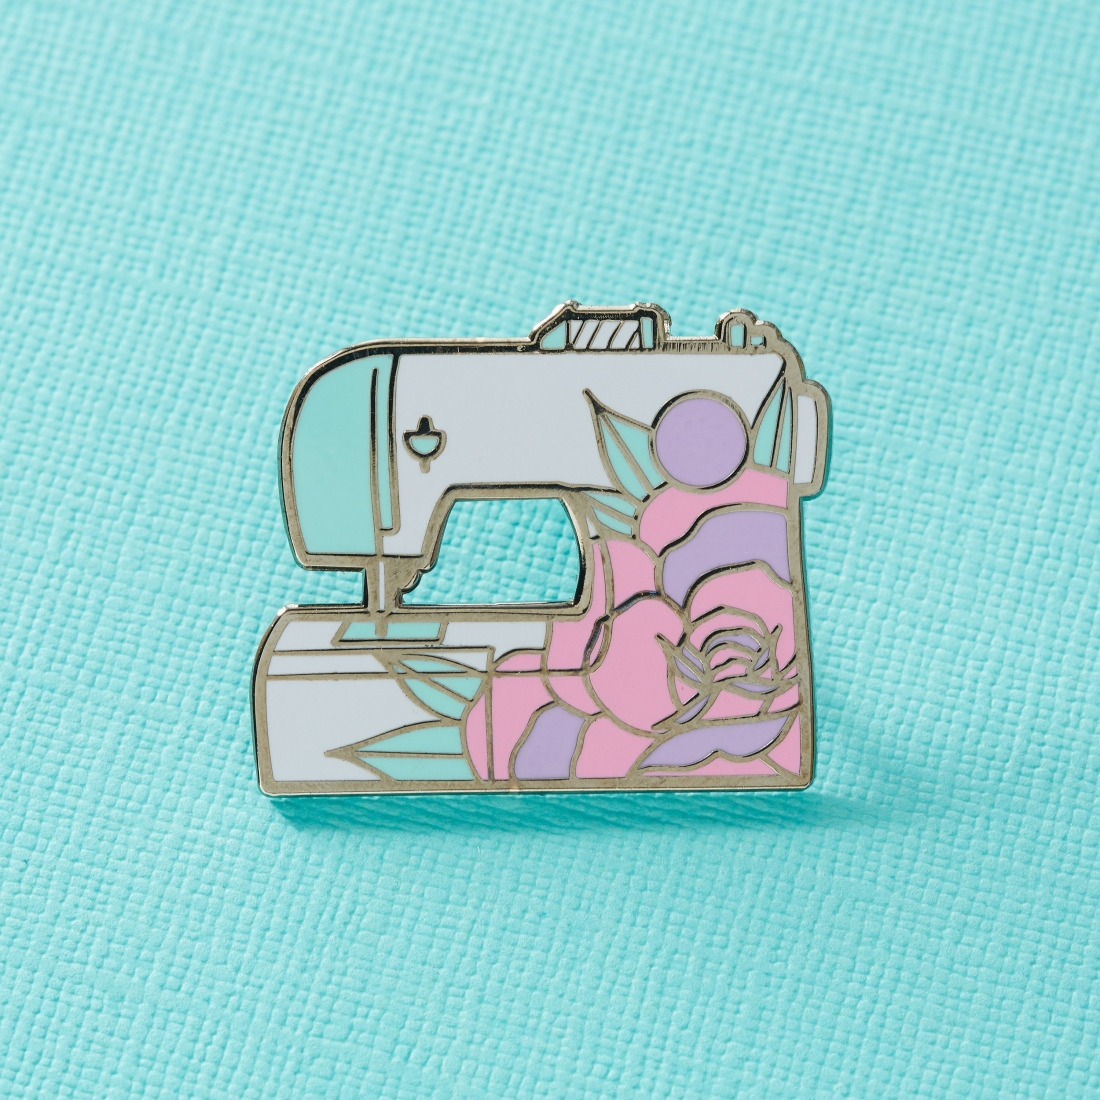 10 of the best enamel pin badges for crafty designers and